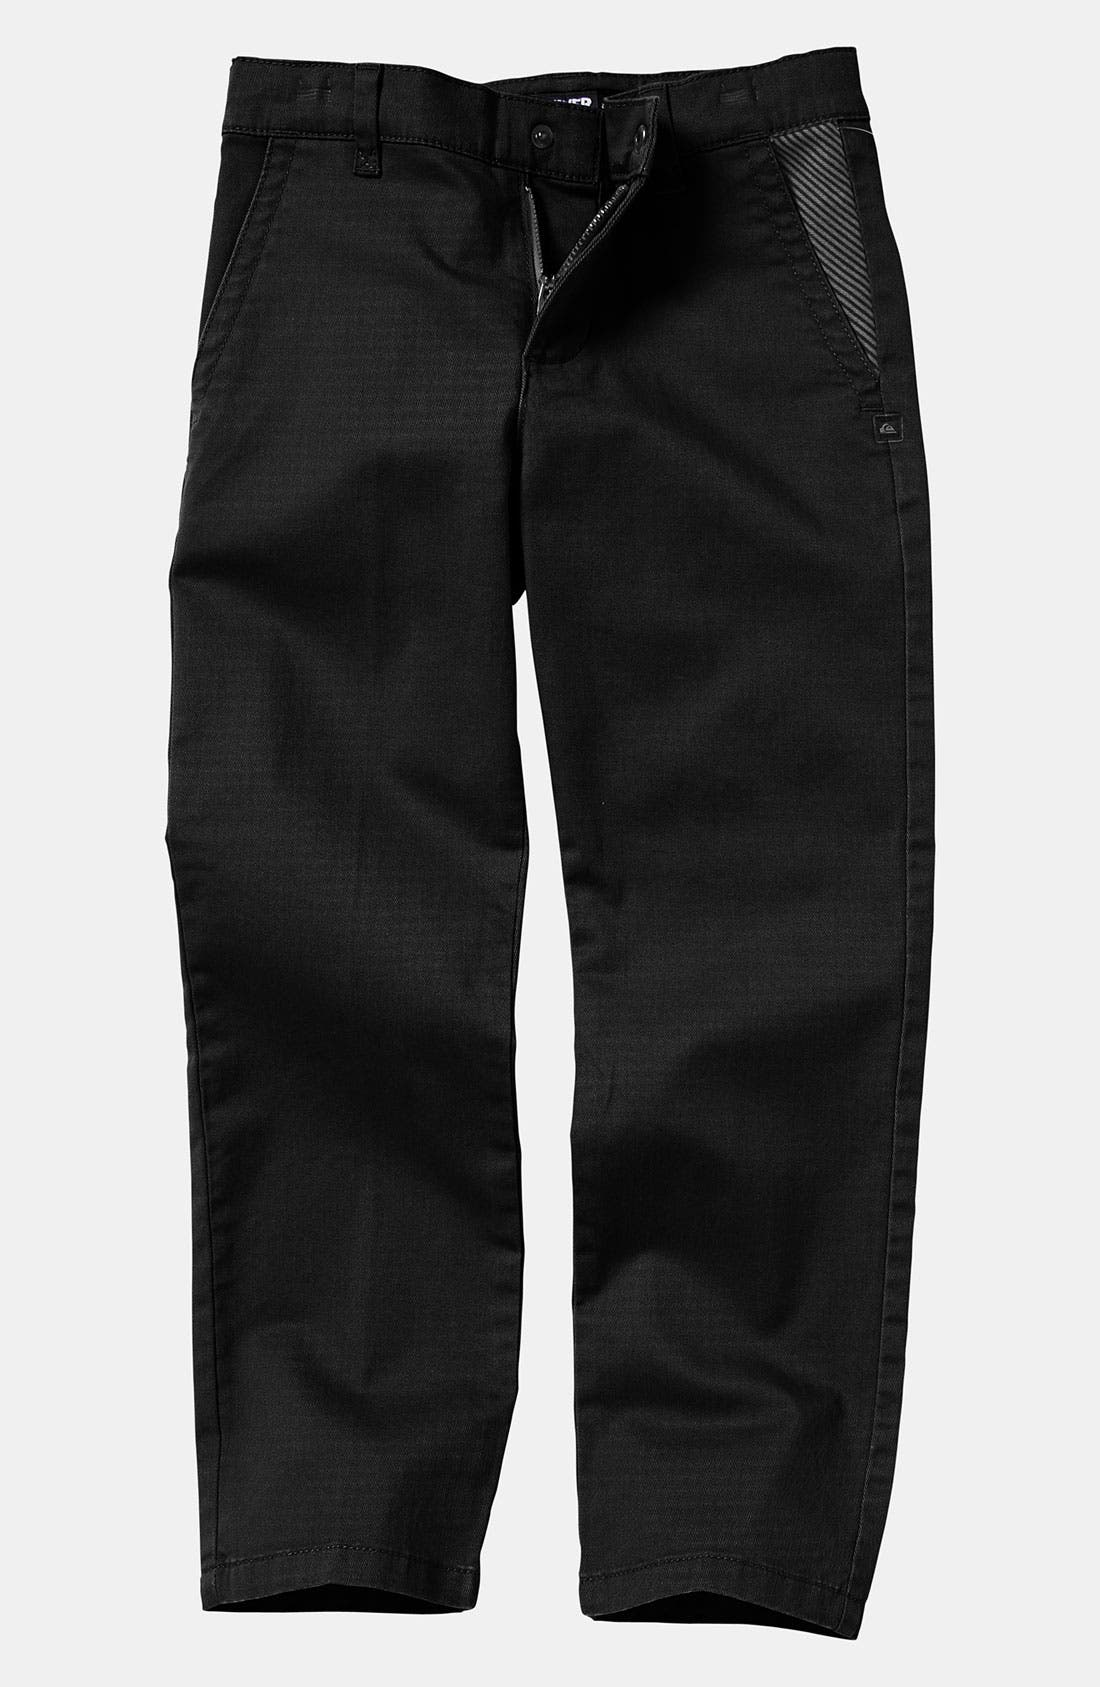 Main Image - Quiksilver 'Box Wire' Chino Pants (Toddler)